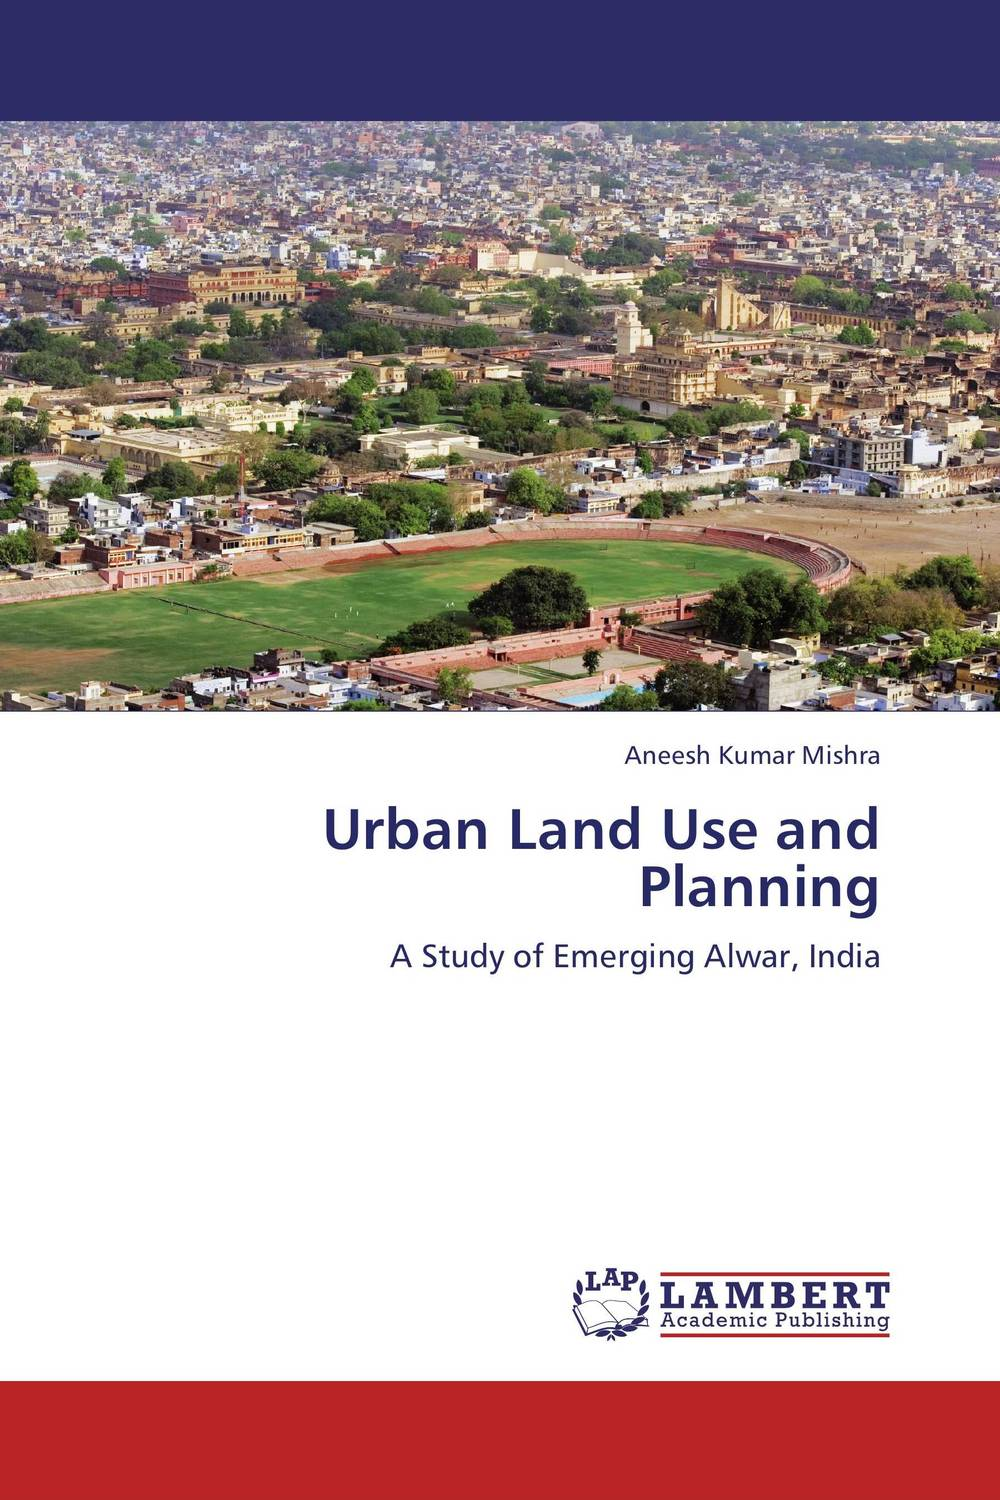 Urban Land Use and Planning